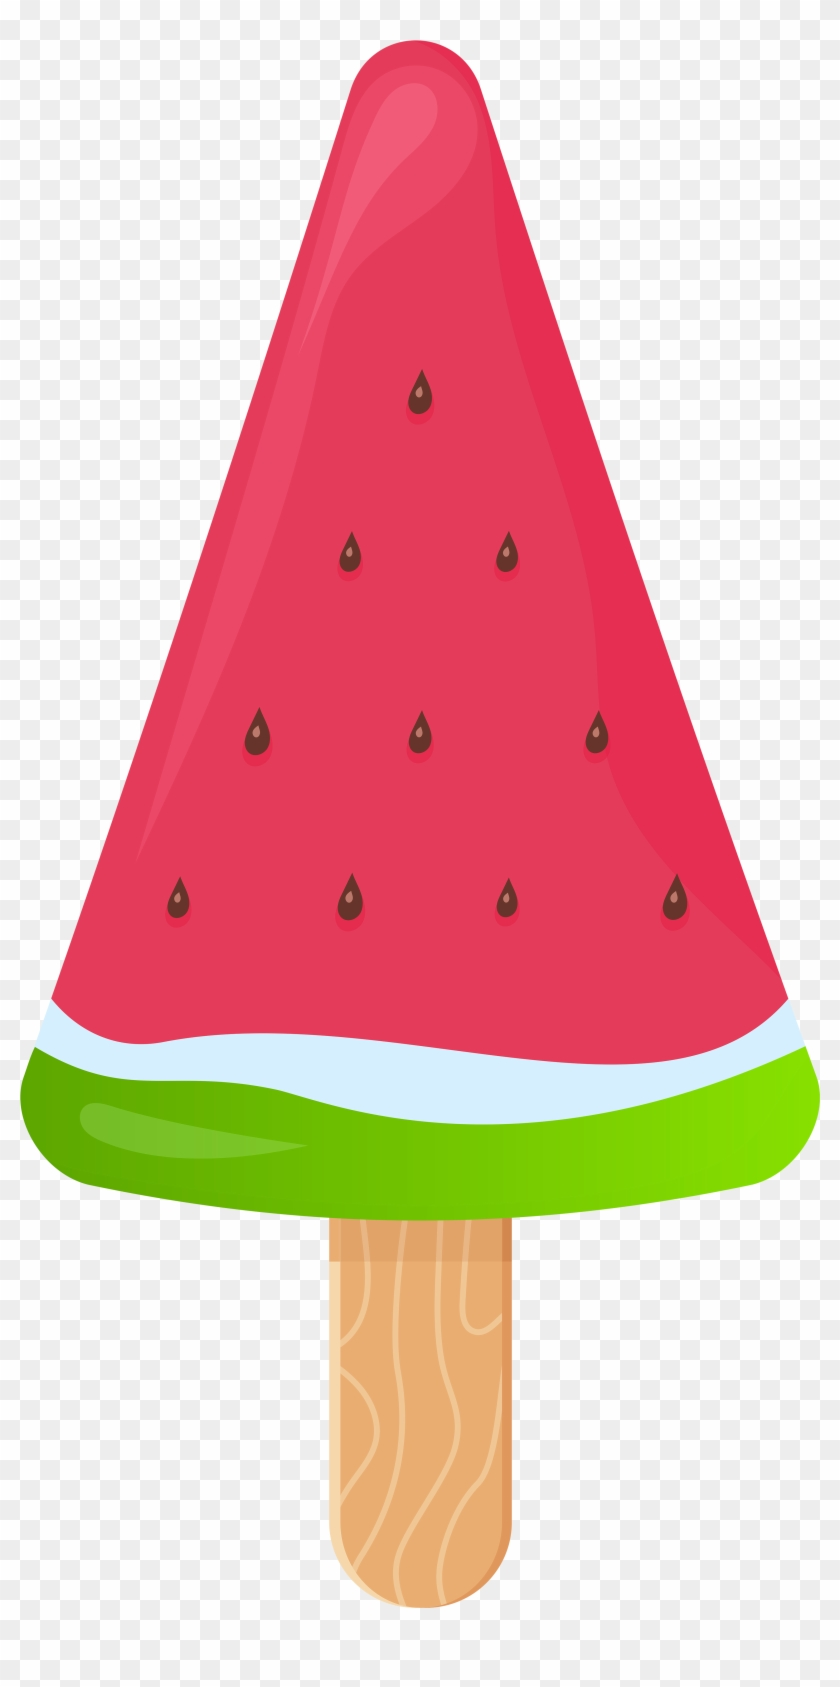 Chocolate Ice Cream Ice Cream Cones Clip Art - Watermelon Ice Cream Stick #14102